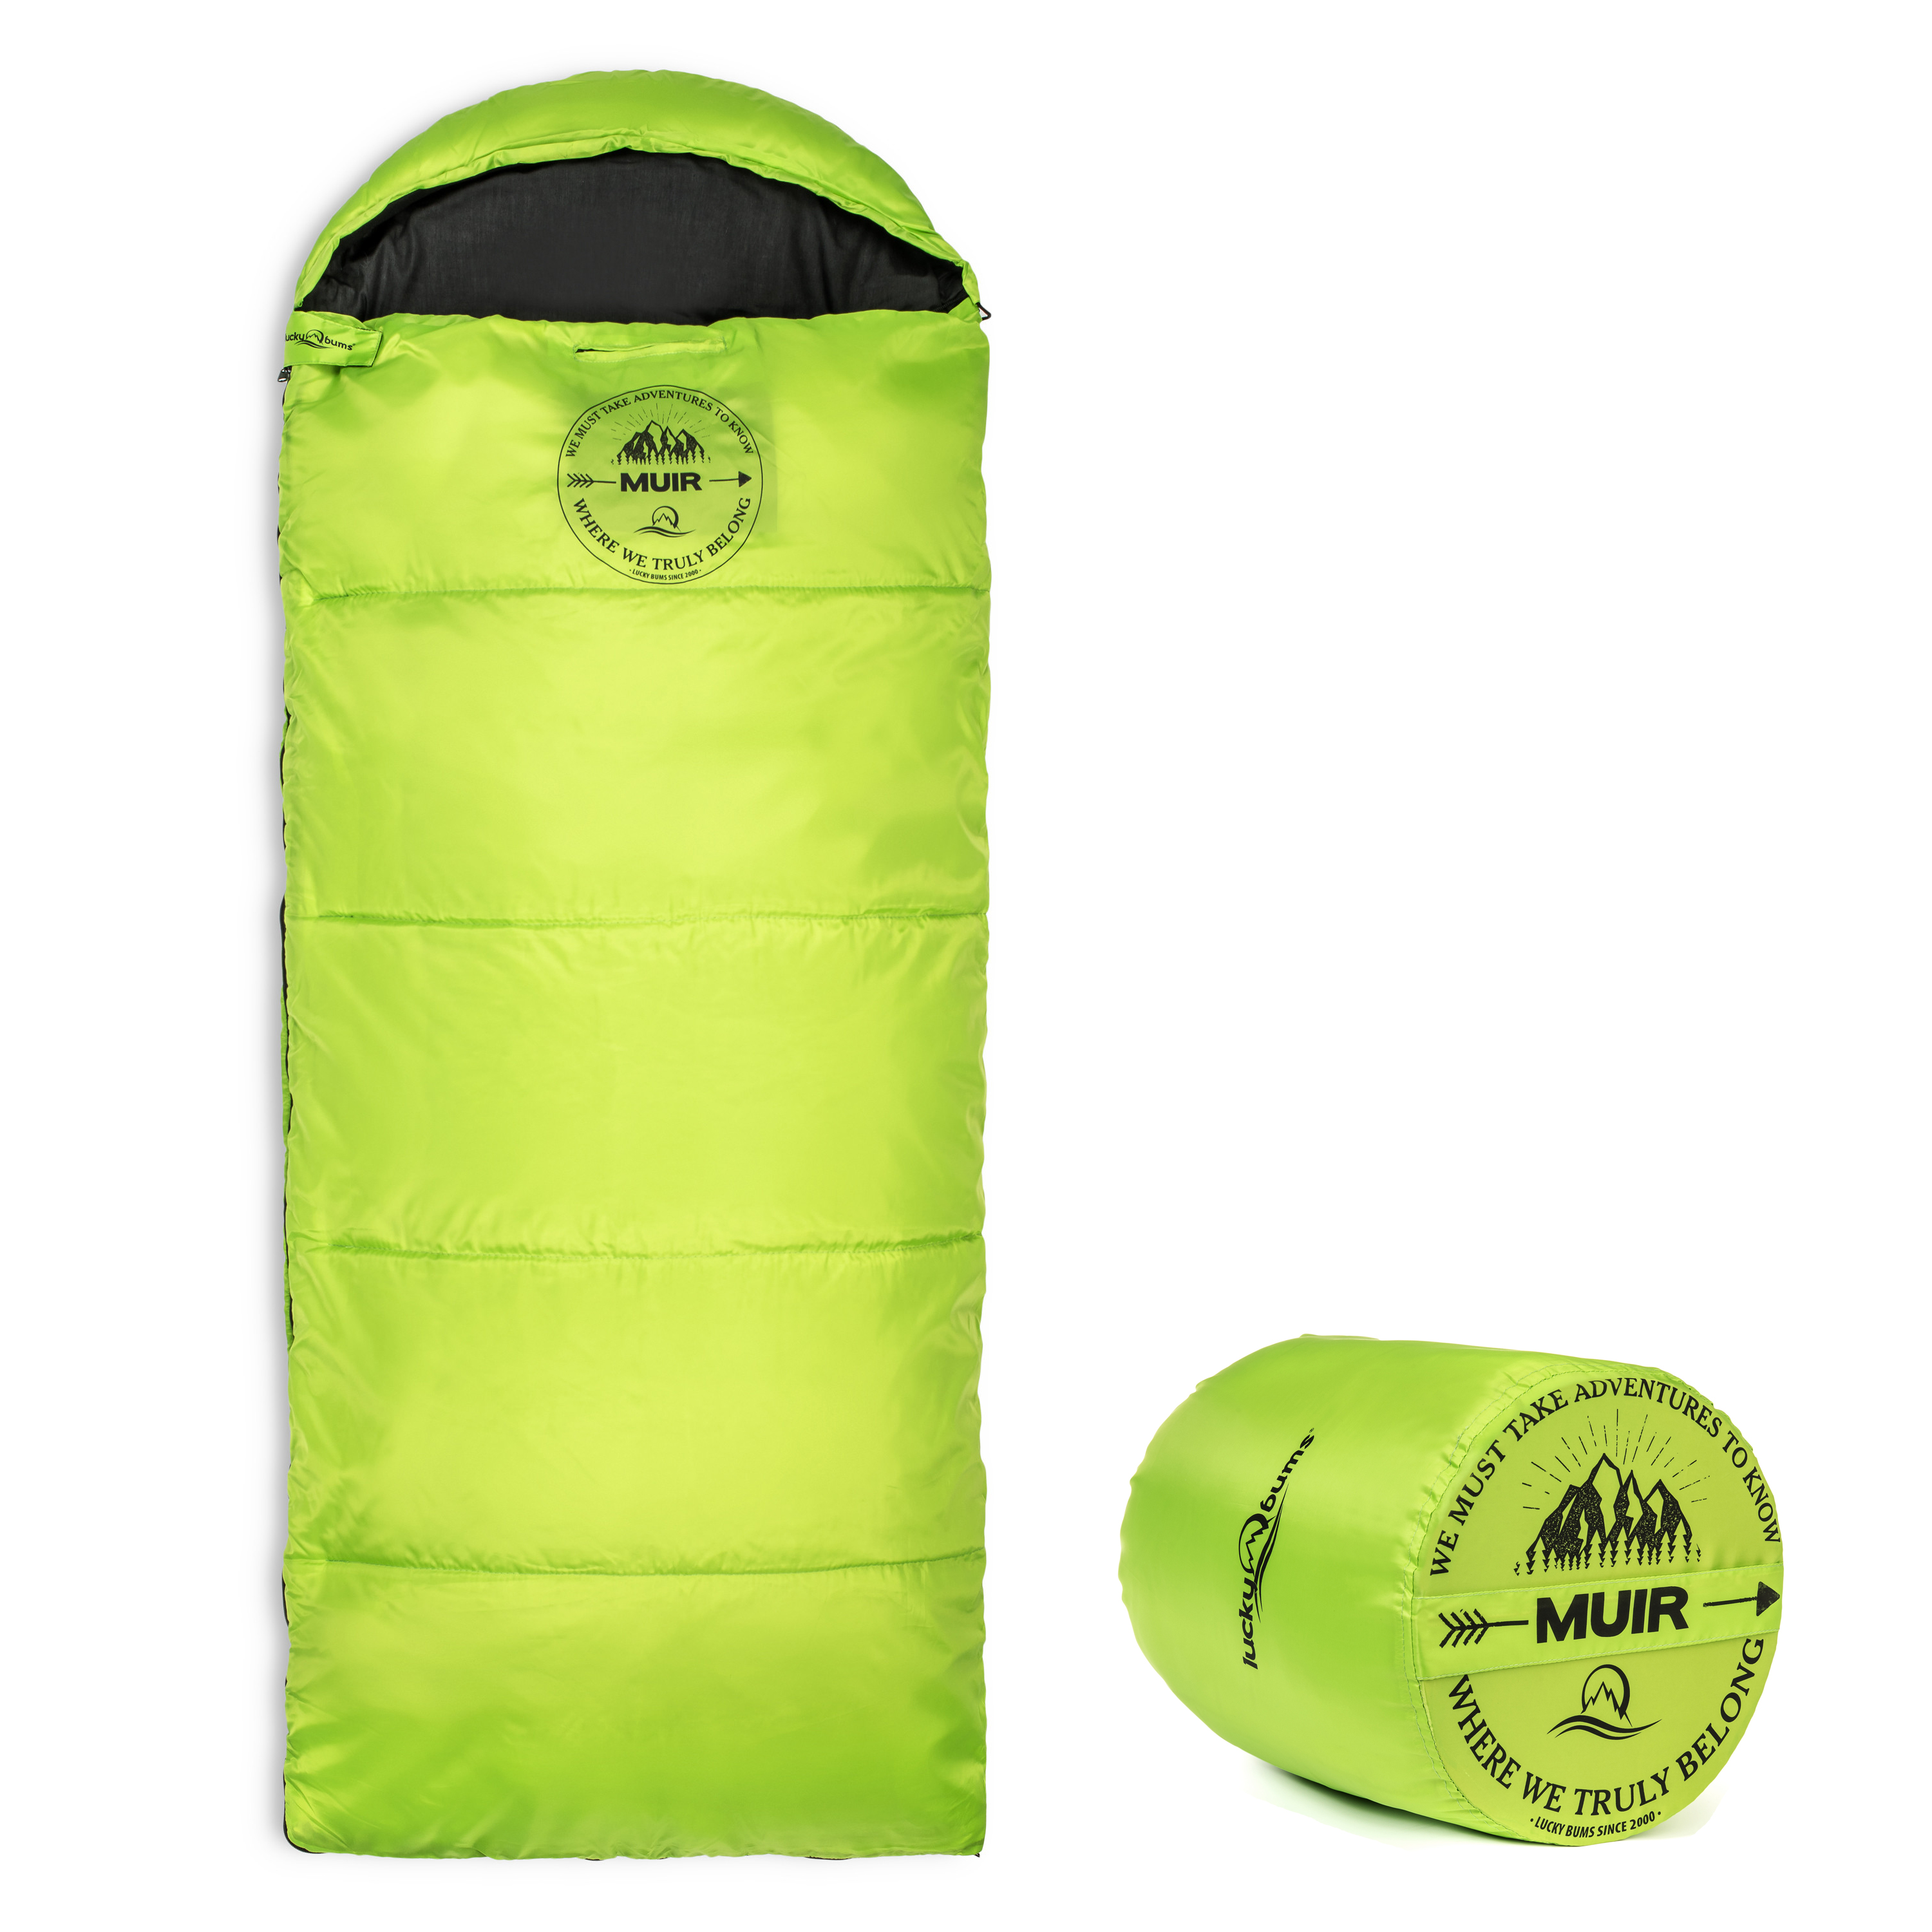 Lucky Bums Youth Muir Sleeping Bag 40°F/5°C with Digital Accessory Pocket and Carry Bag, Blue